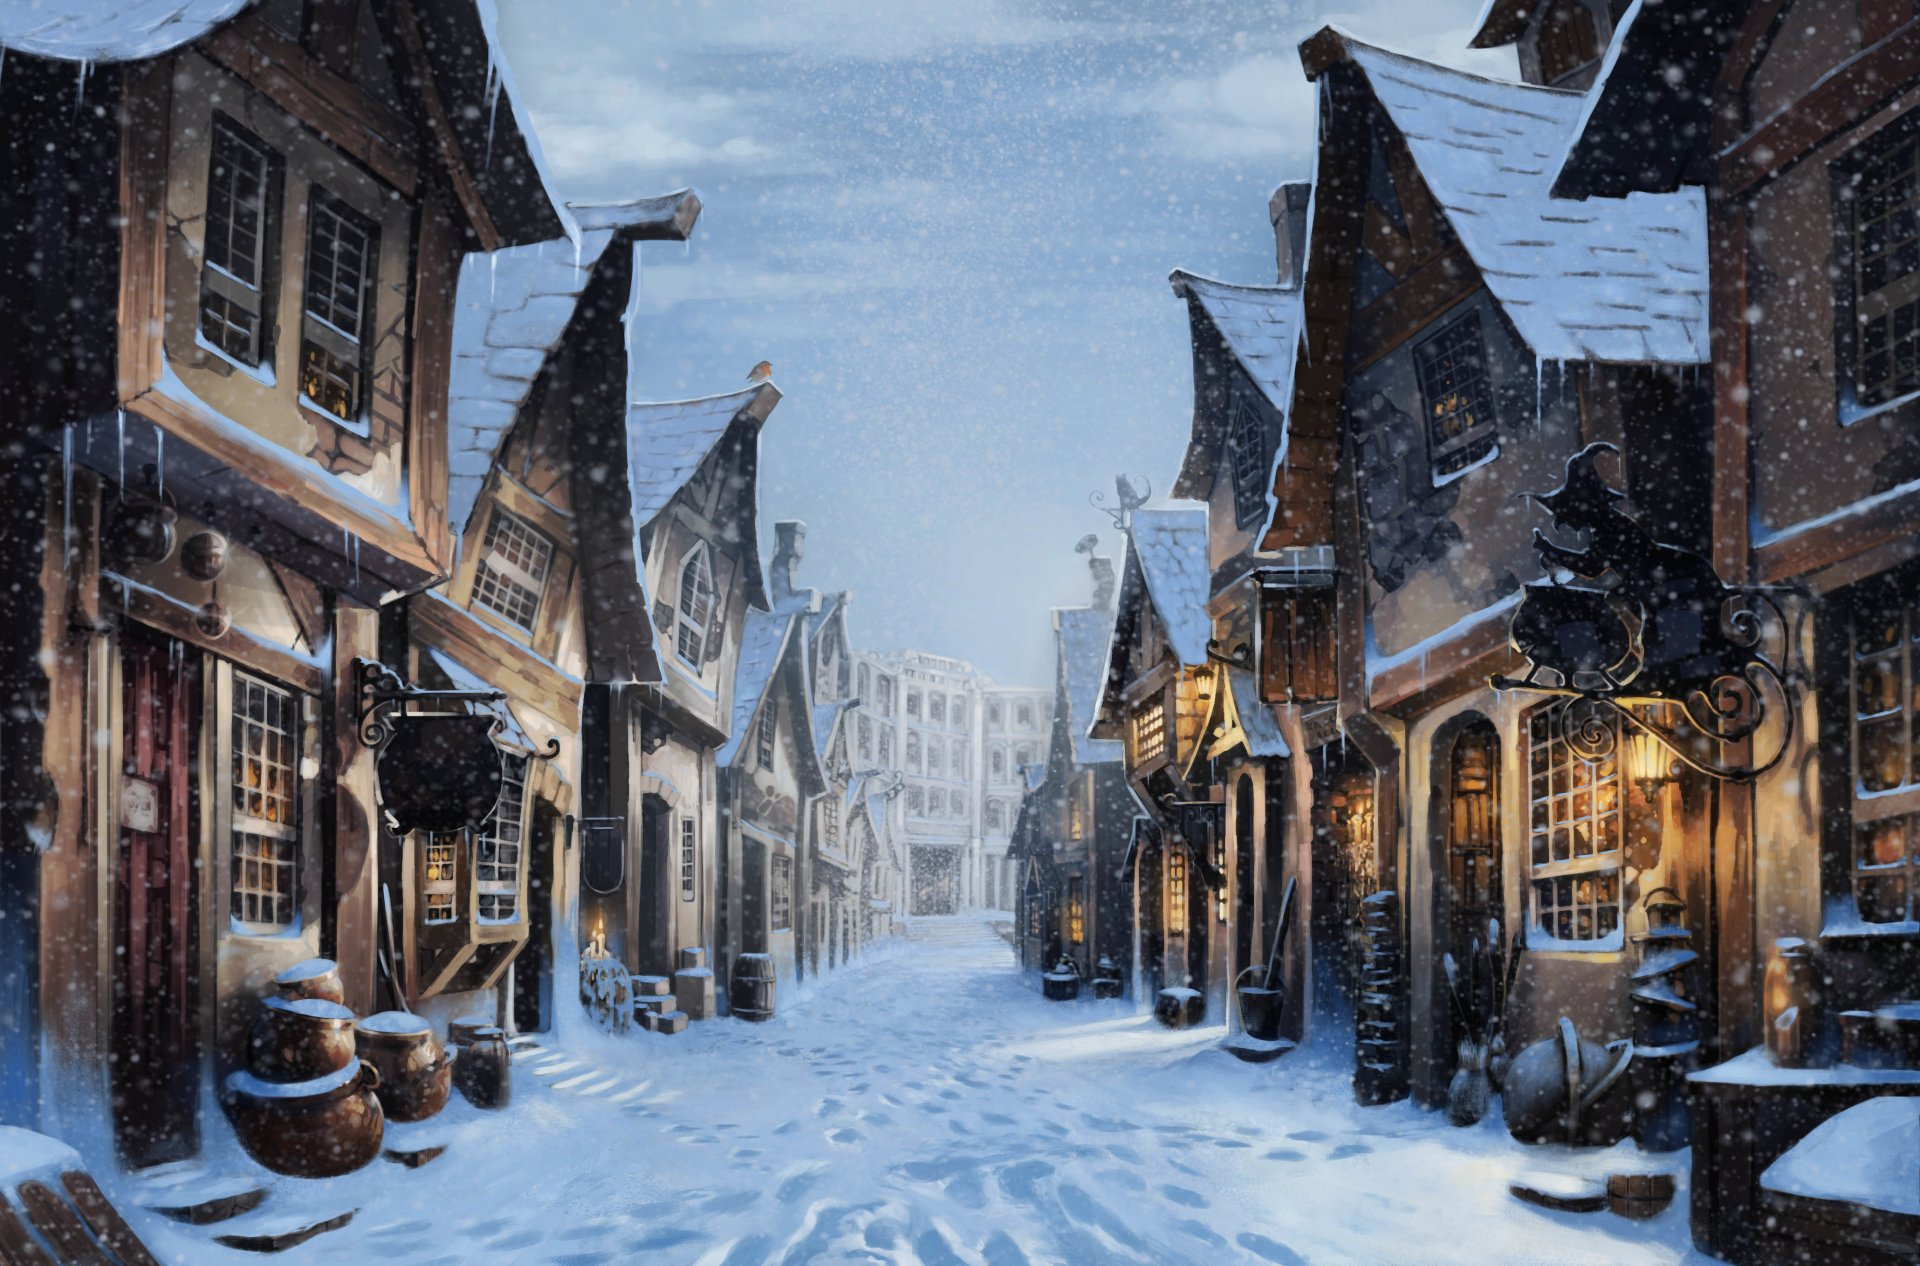 Artistic - Winter  Artistic Harry Potter Movie Diagon Alley House Snow Wallpaper